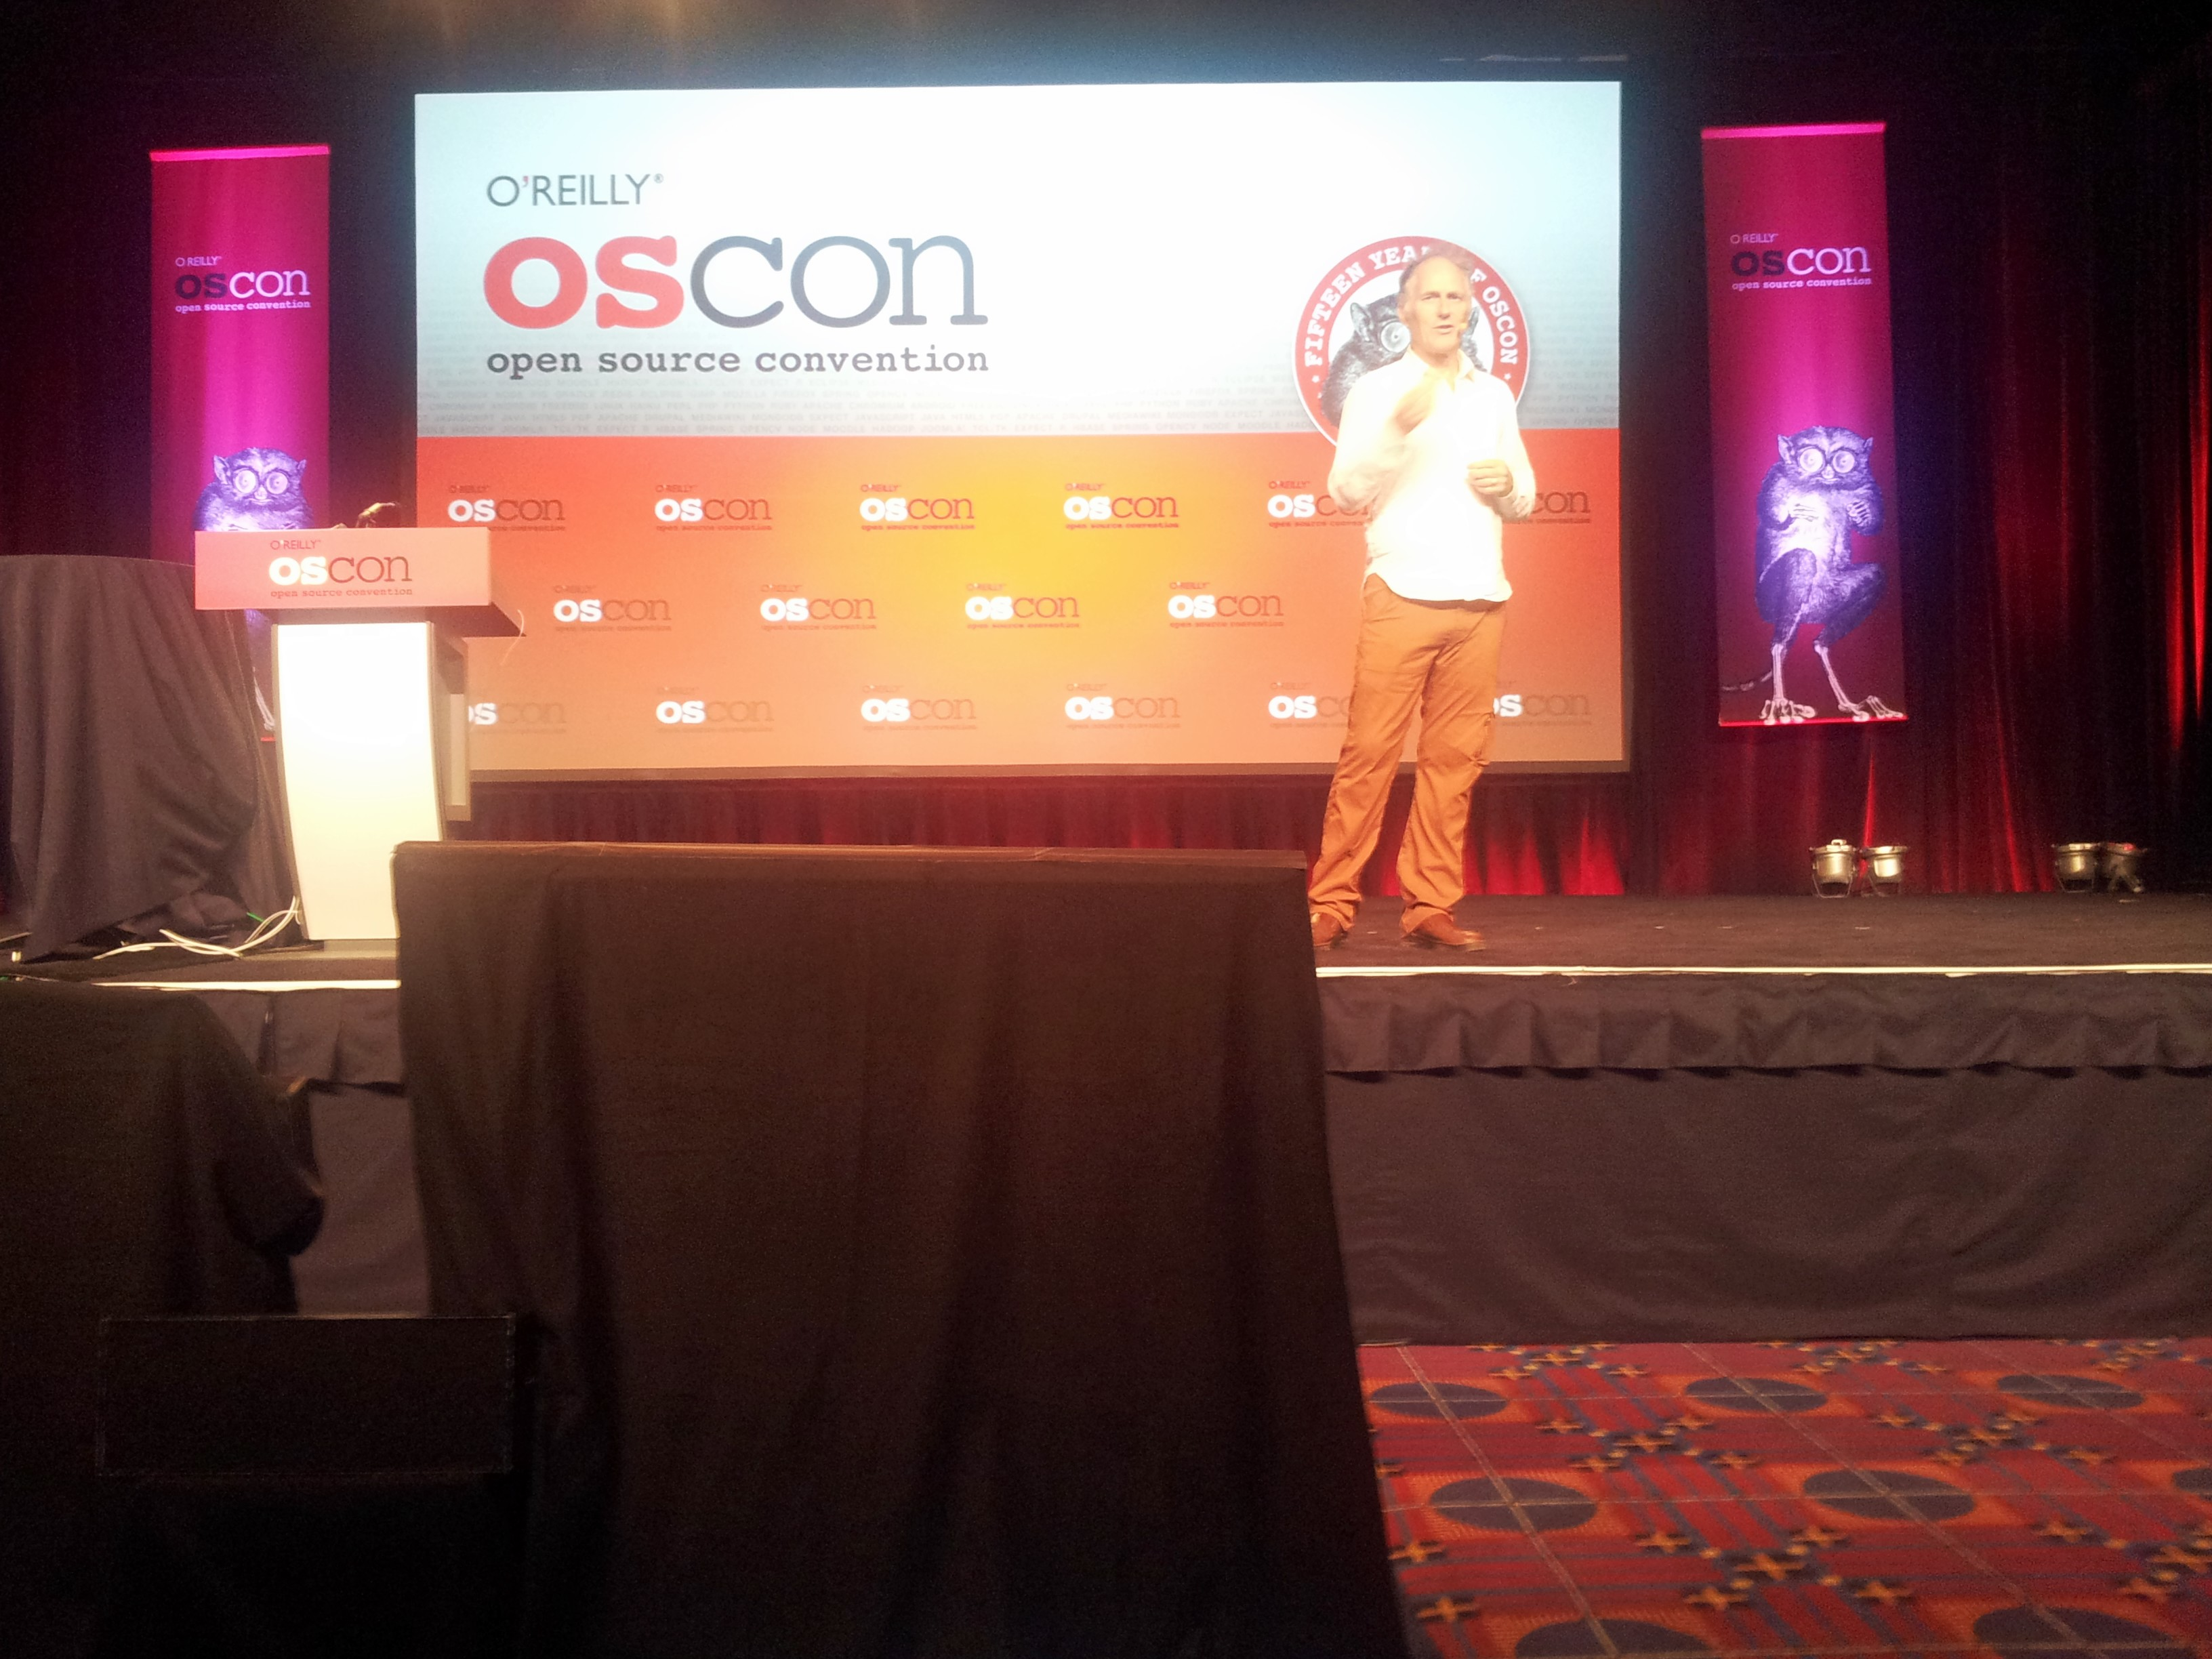 Tim O'Reilly's on stage giving his talk